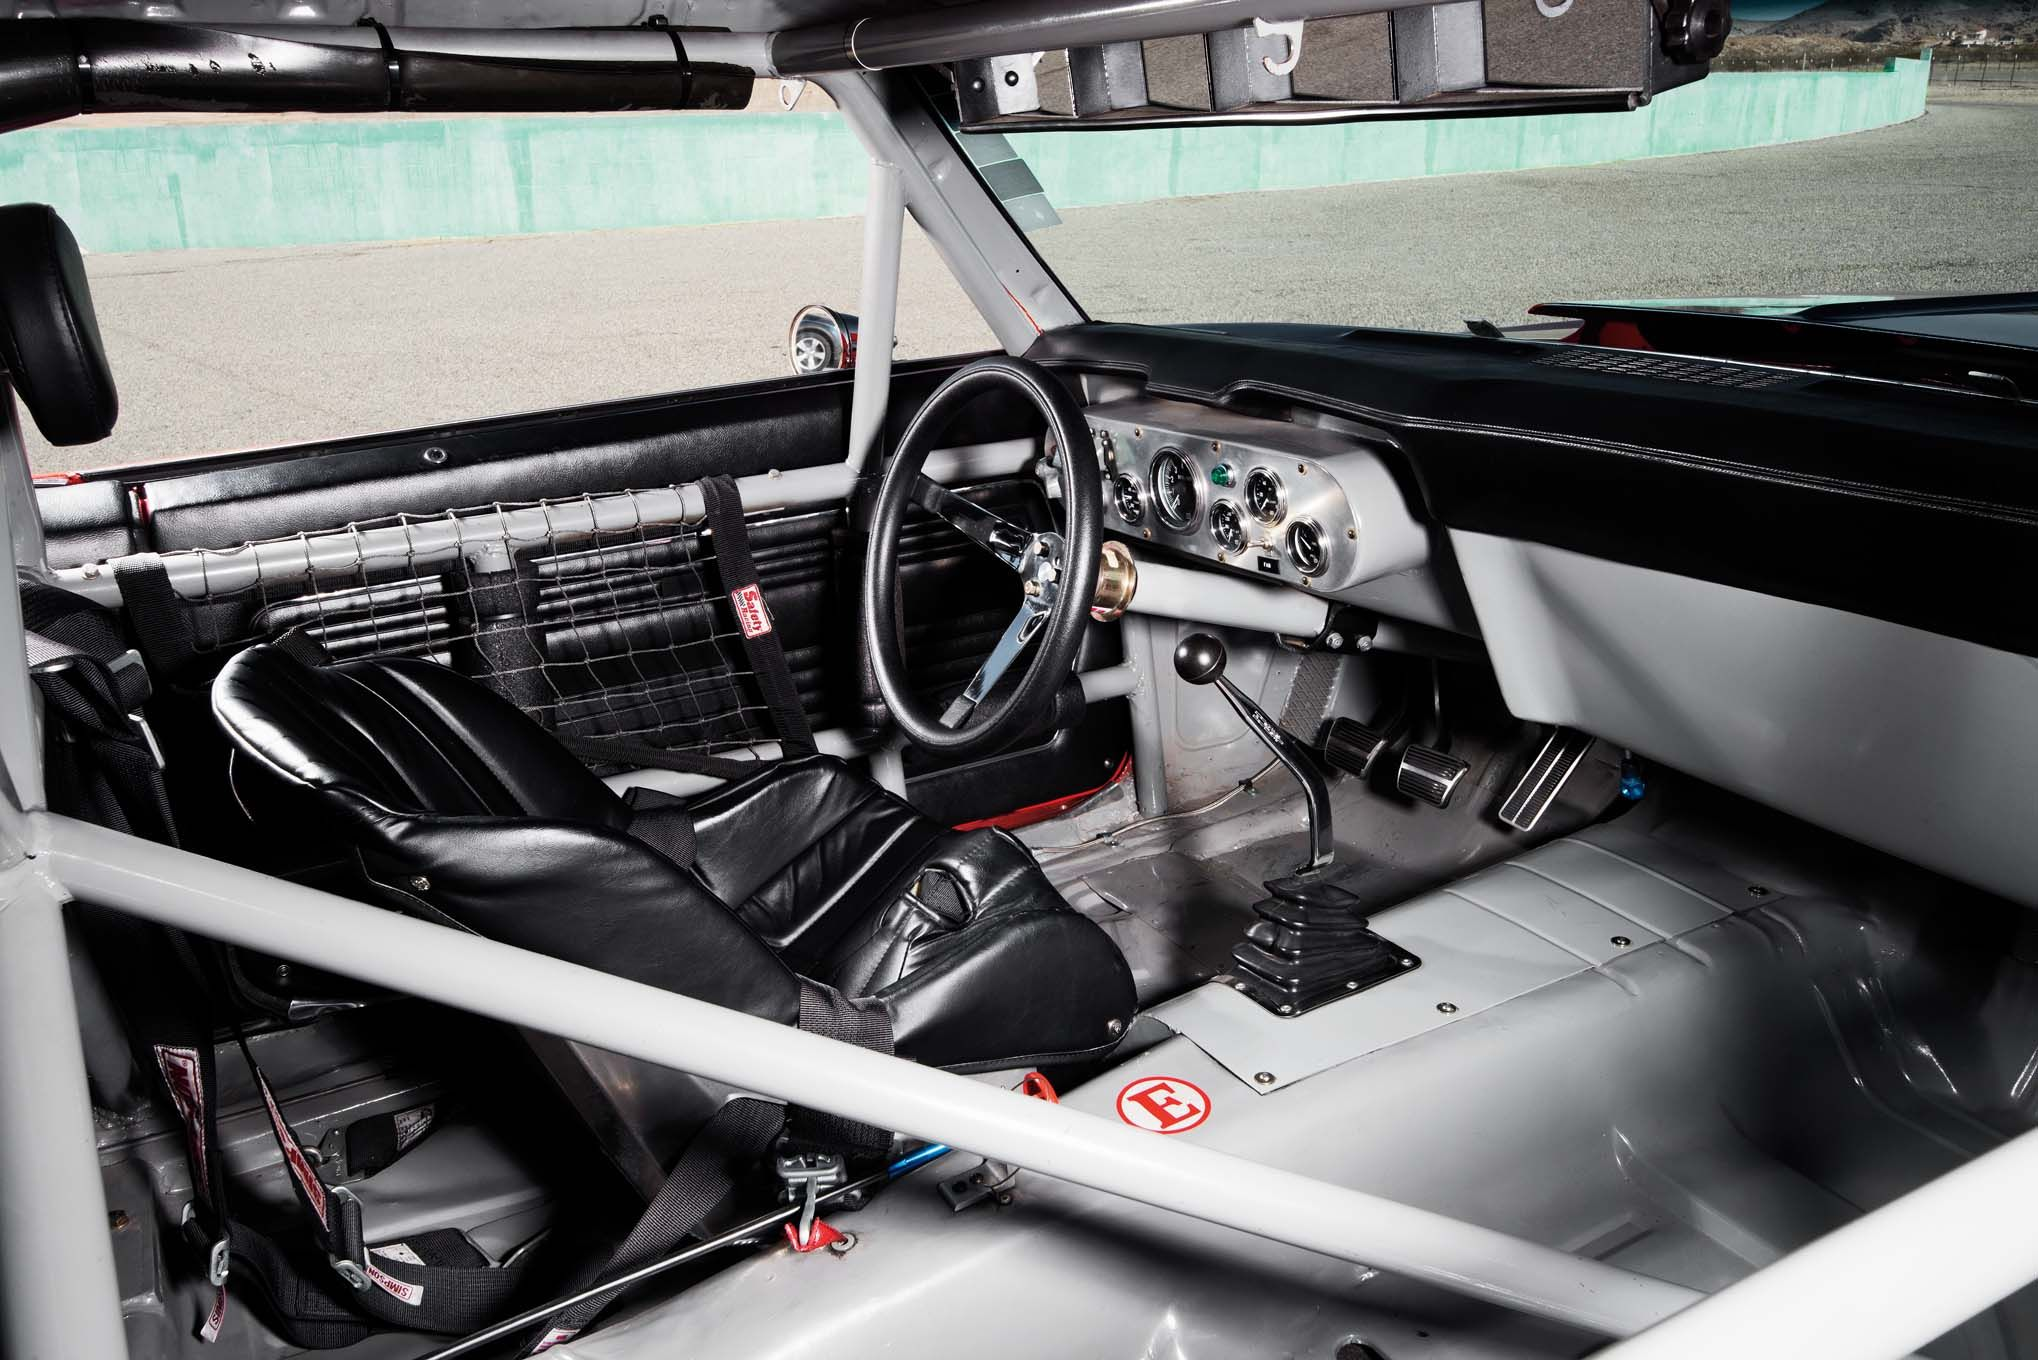 Chevrolet Camaro Trans Am Race Car Interior Muscle Cars